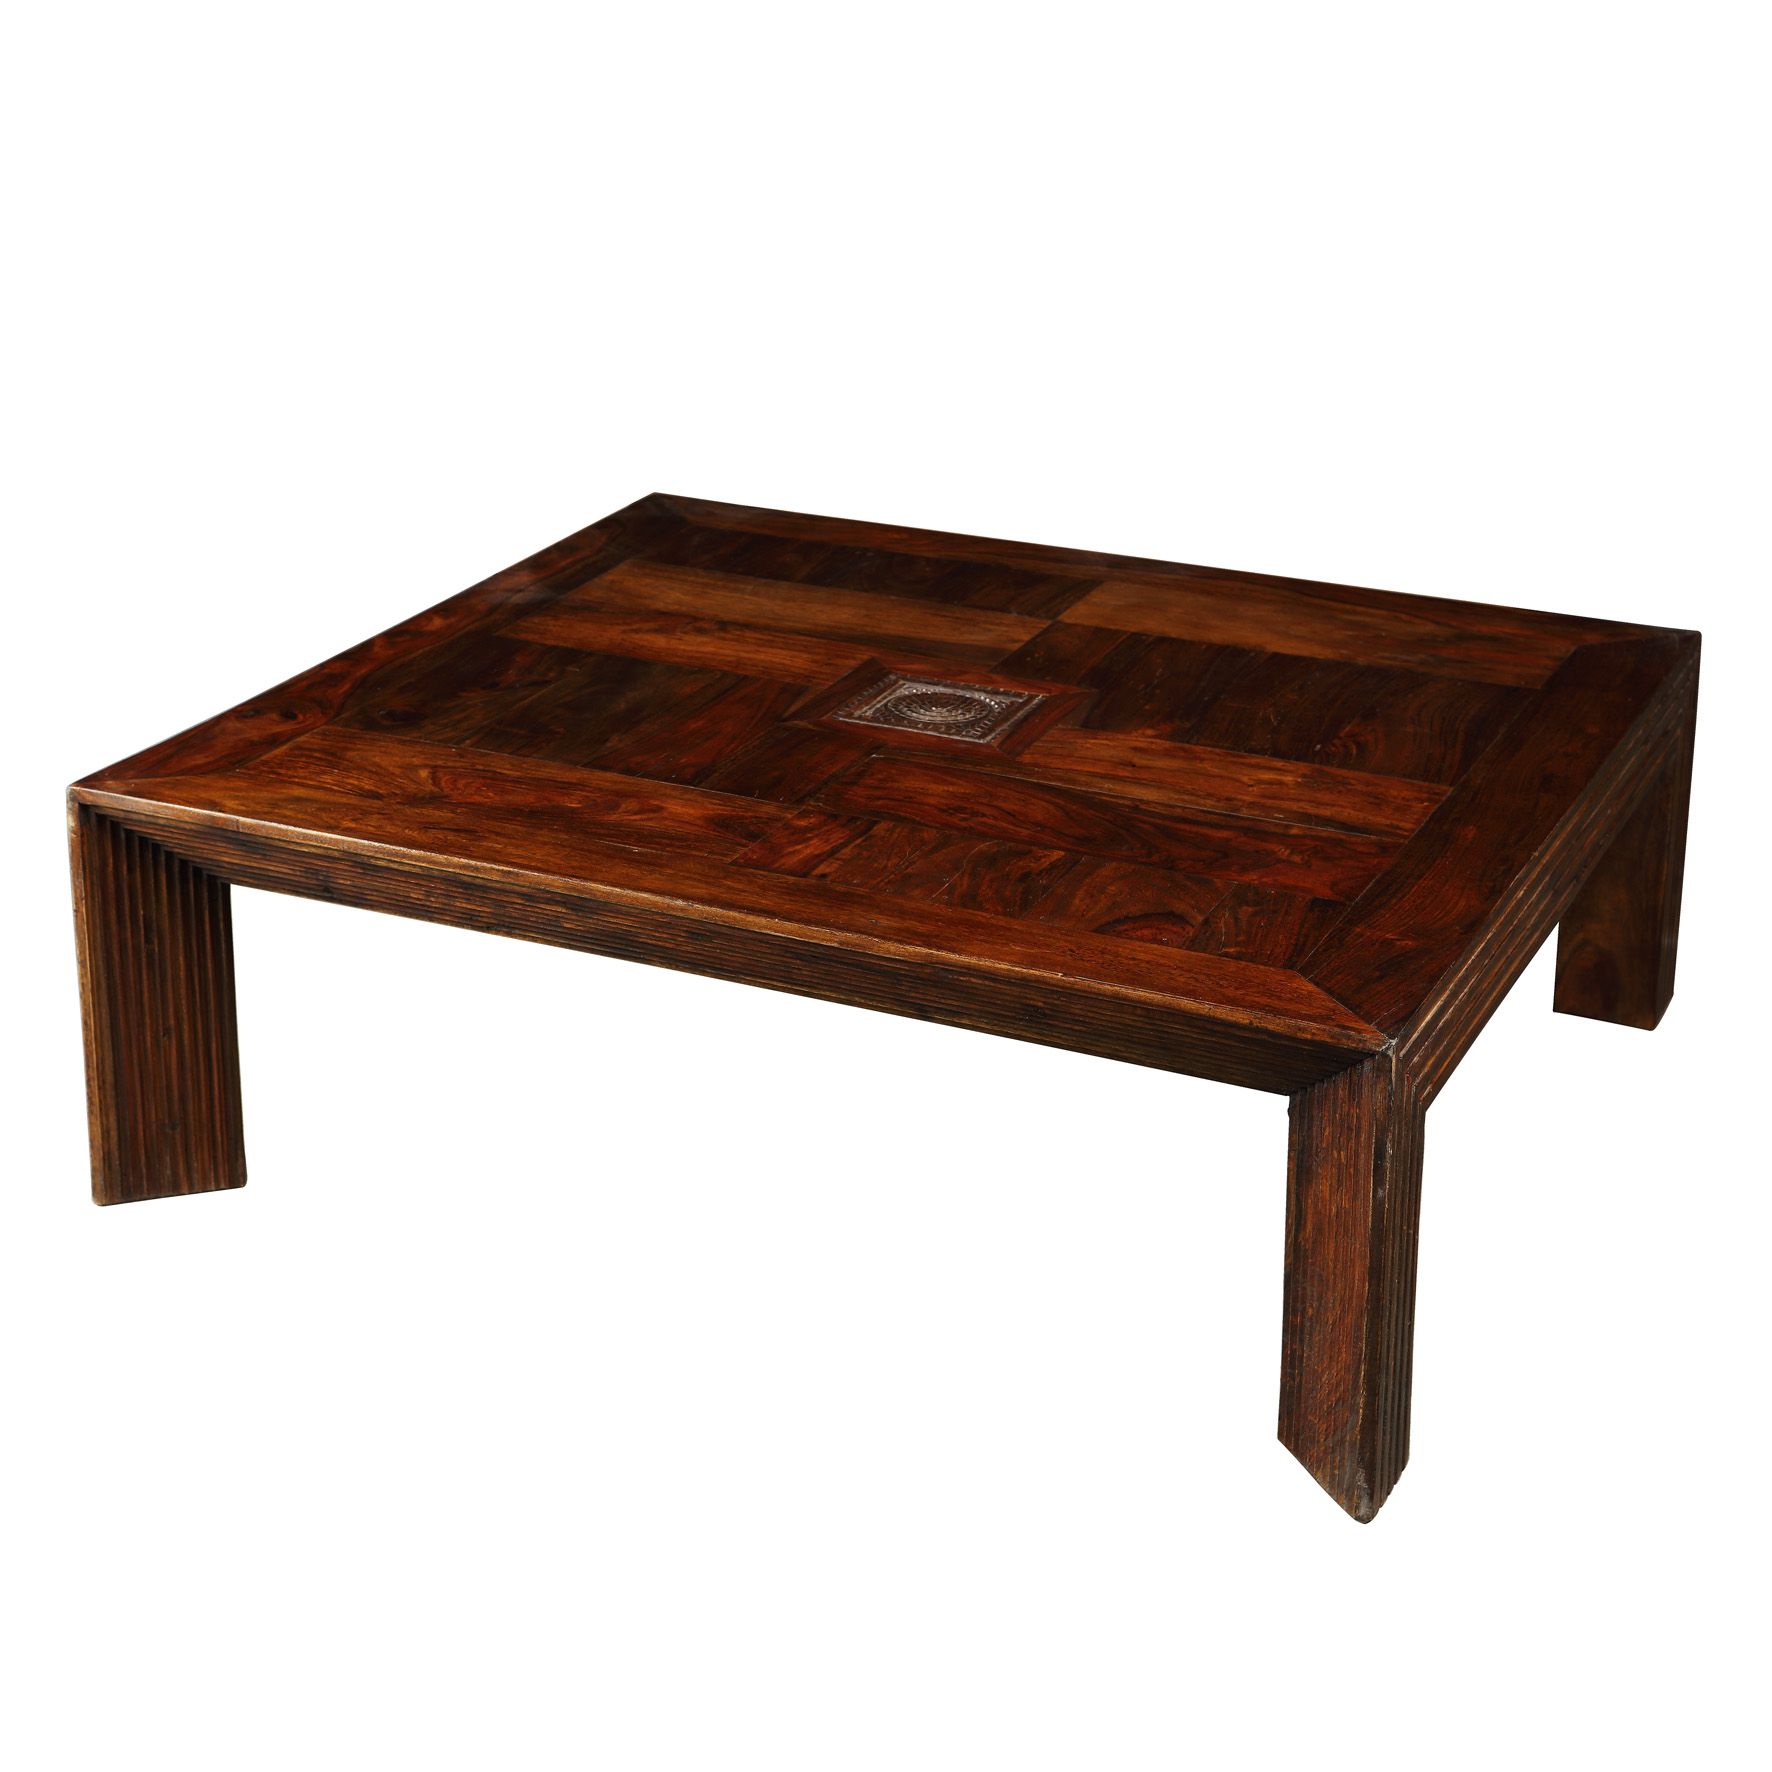 Table basse coloniale - Table basse coloniale ...